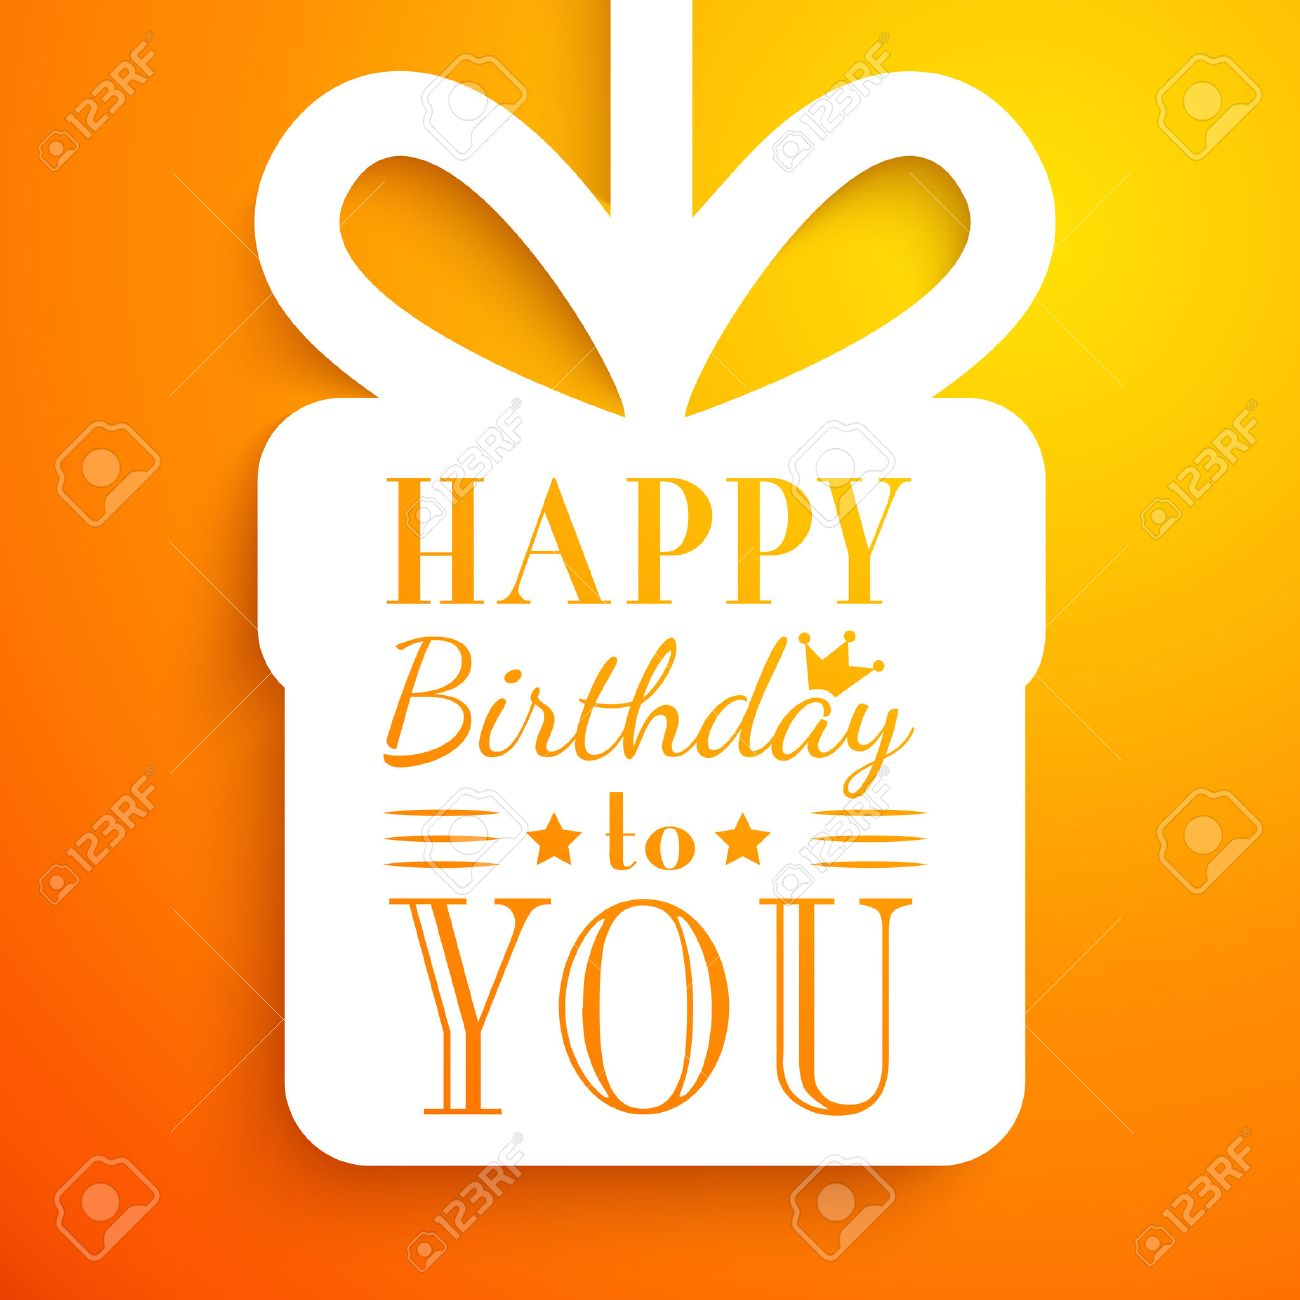 Happy birthday card typography letters font type editable for happy birthday card typography letters font type editable for happy birthday party invitation thecheapjerseys Images